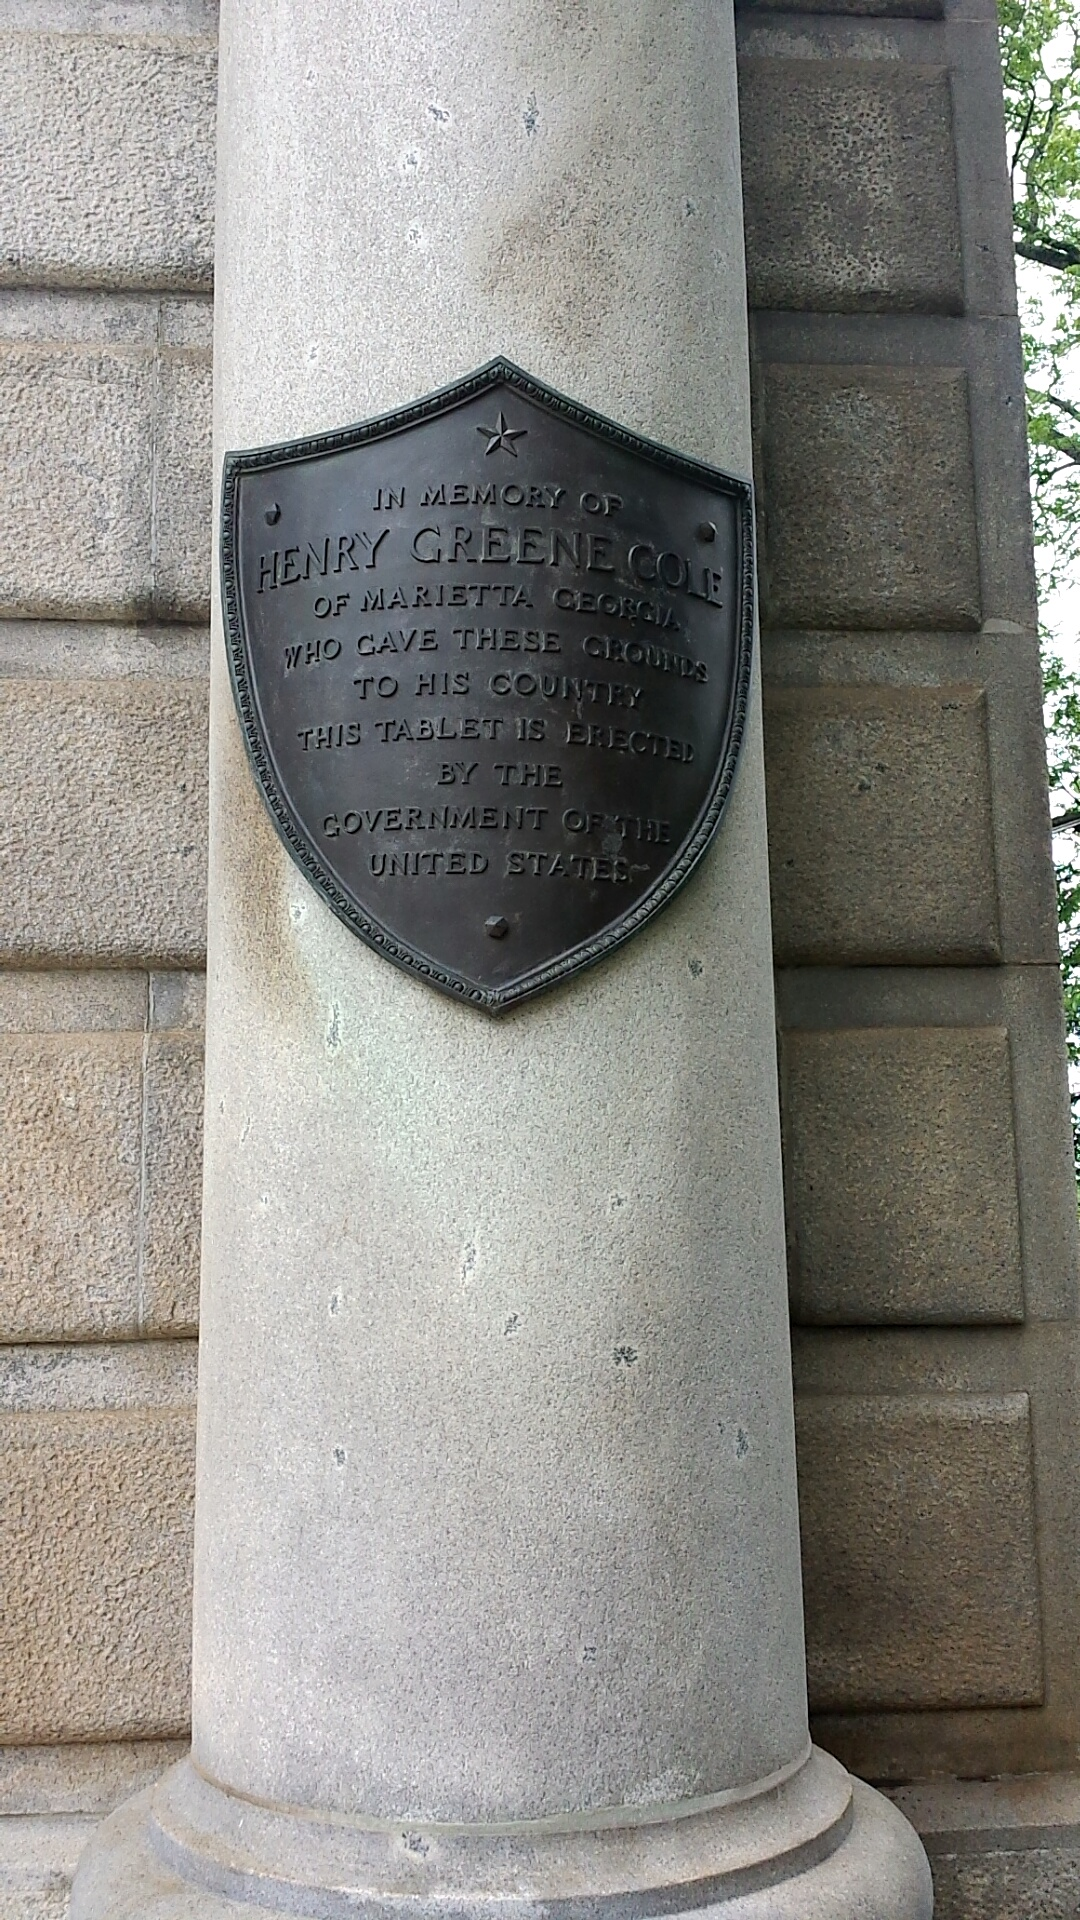 This plaque commemorates the memory of Henry Greene Cole, who donated the land for the cemetery.